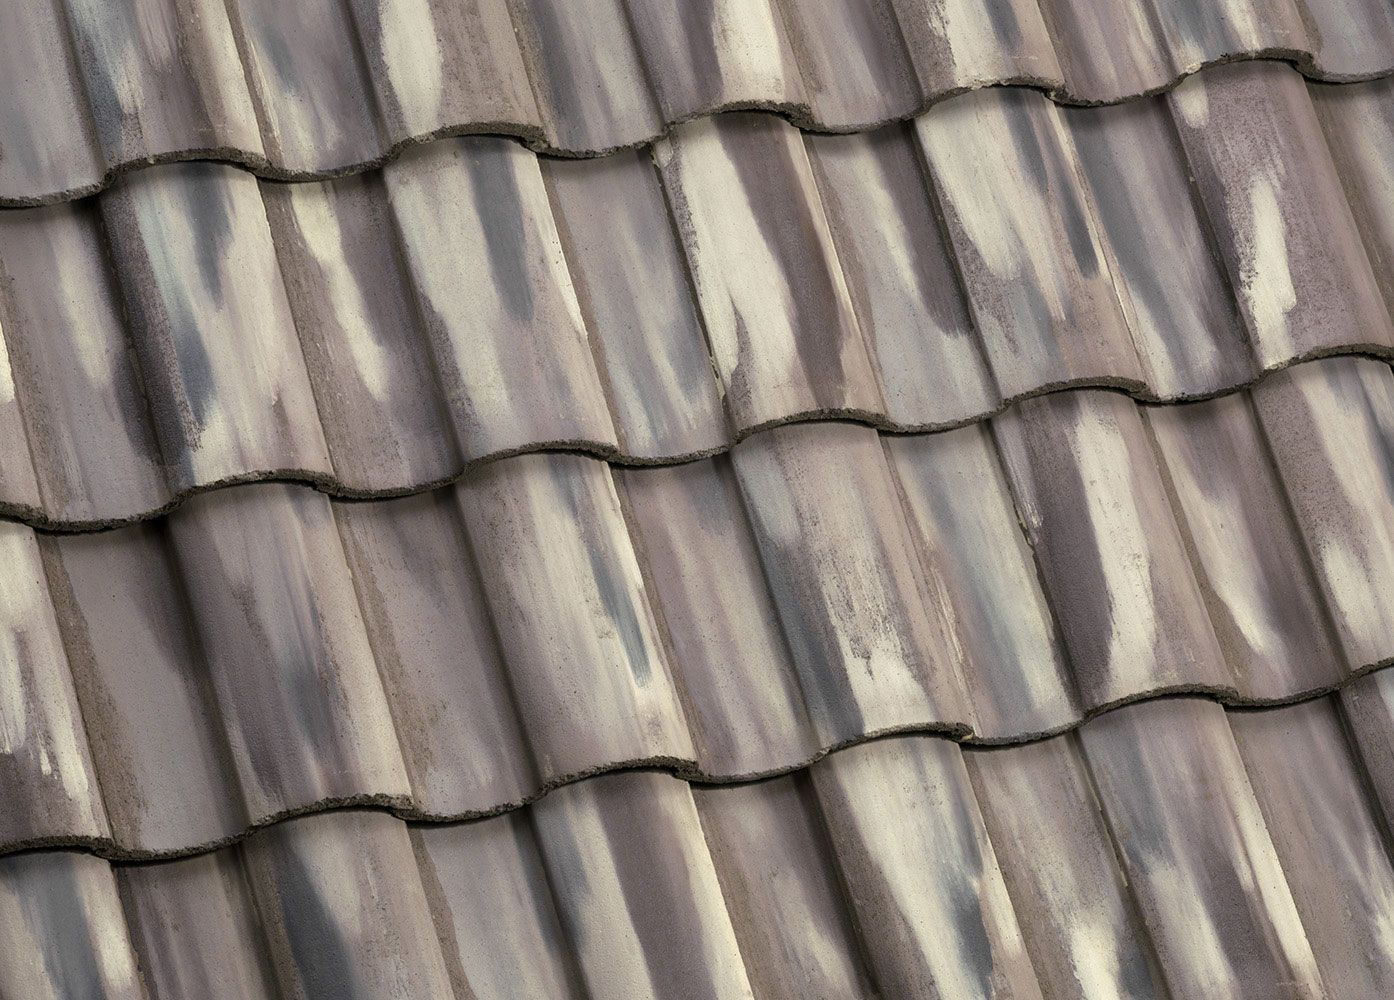 39707 Eagle Roofing In 2020 Roofing Concrete Roof Tiles Concrete Roof